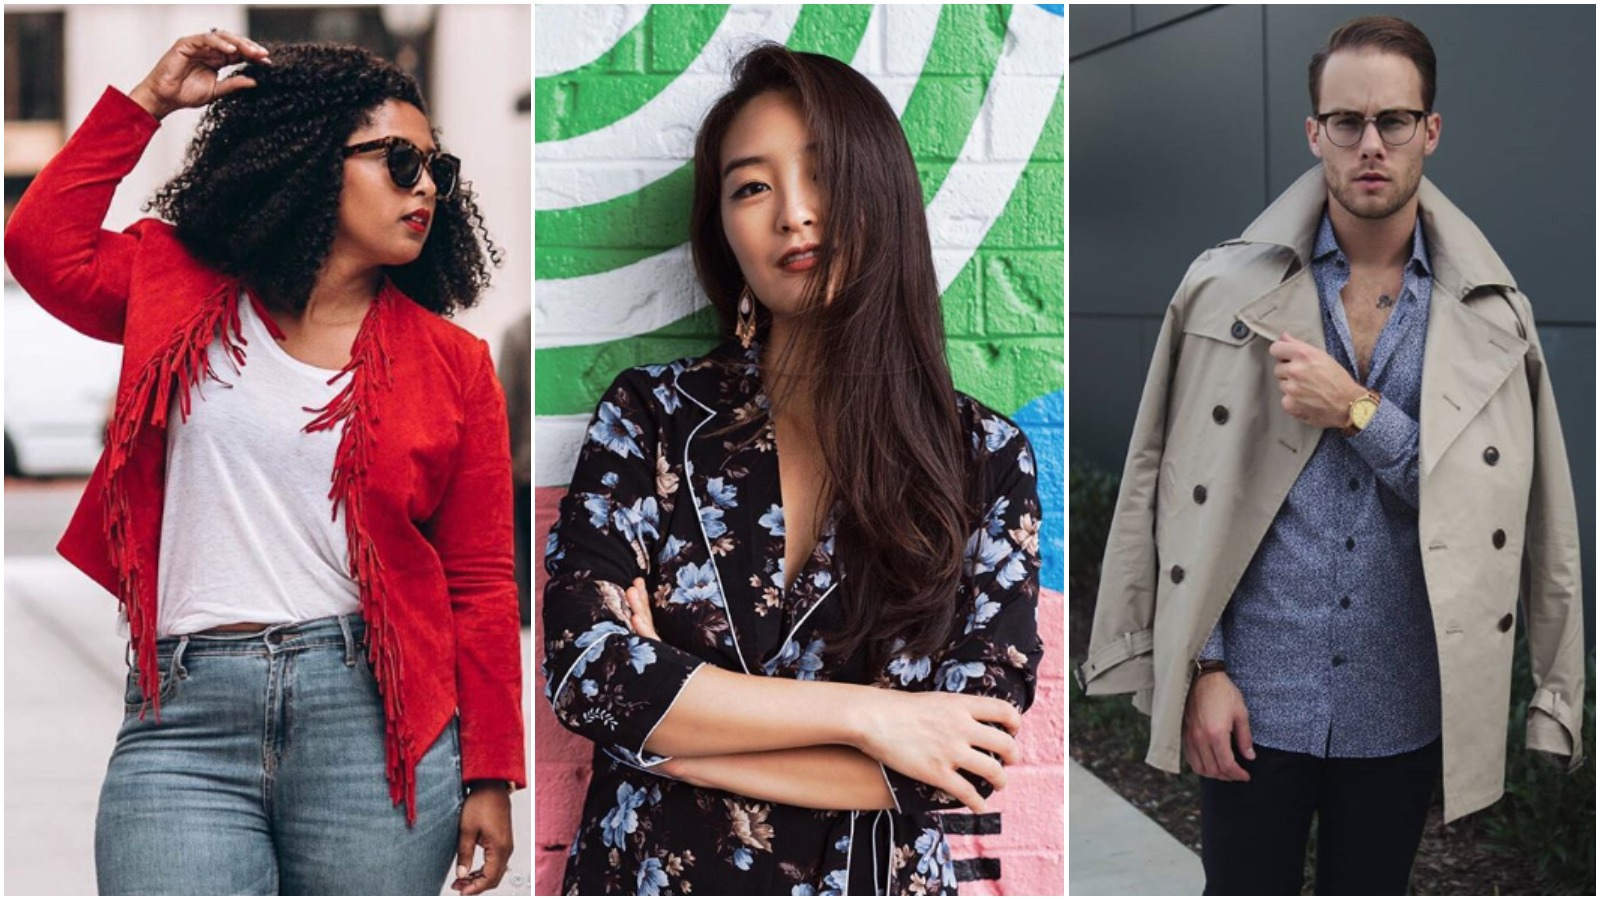 Fall is finally here! Time to put away your linens and switch to sweaters and layers. We caught up with some of D.C.'s favorite fashion Instagrammers and bloggers to check out some of their autumn looks. Here are some to copy right now.{&nbsp;}<p></p>